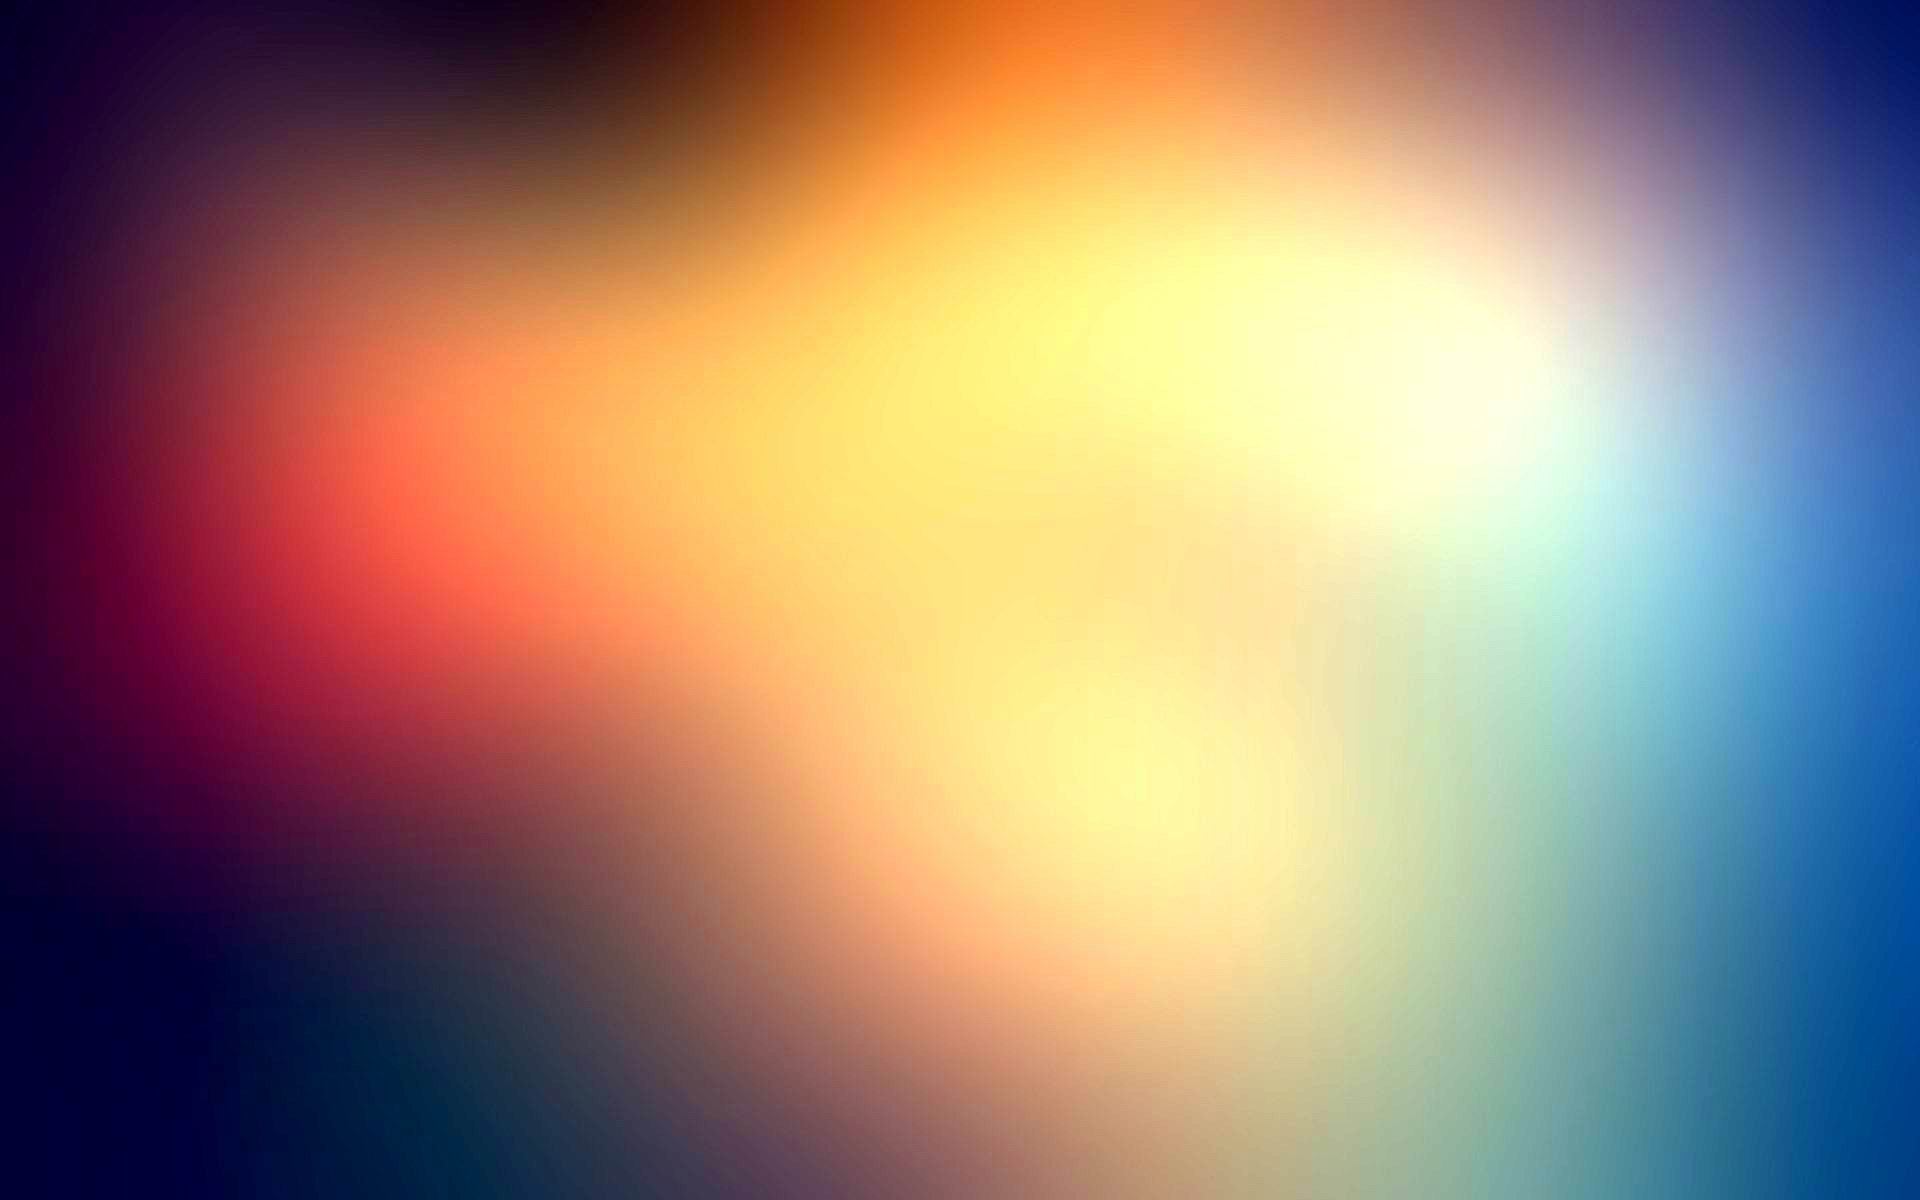 abstract blurry creative gaussian blur 1920a—1200